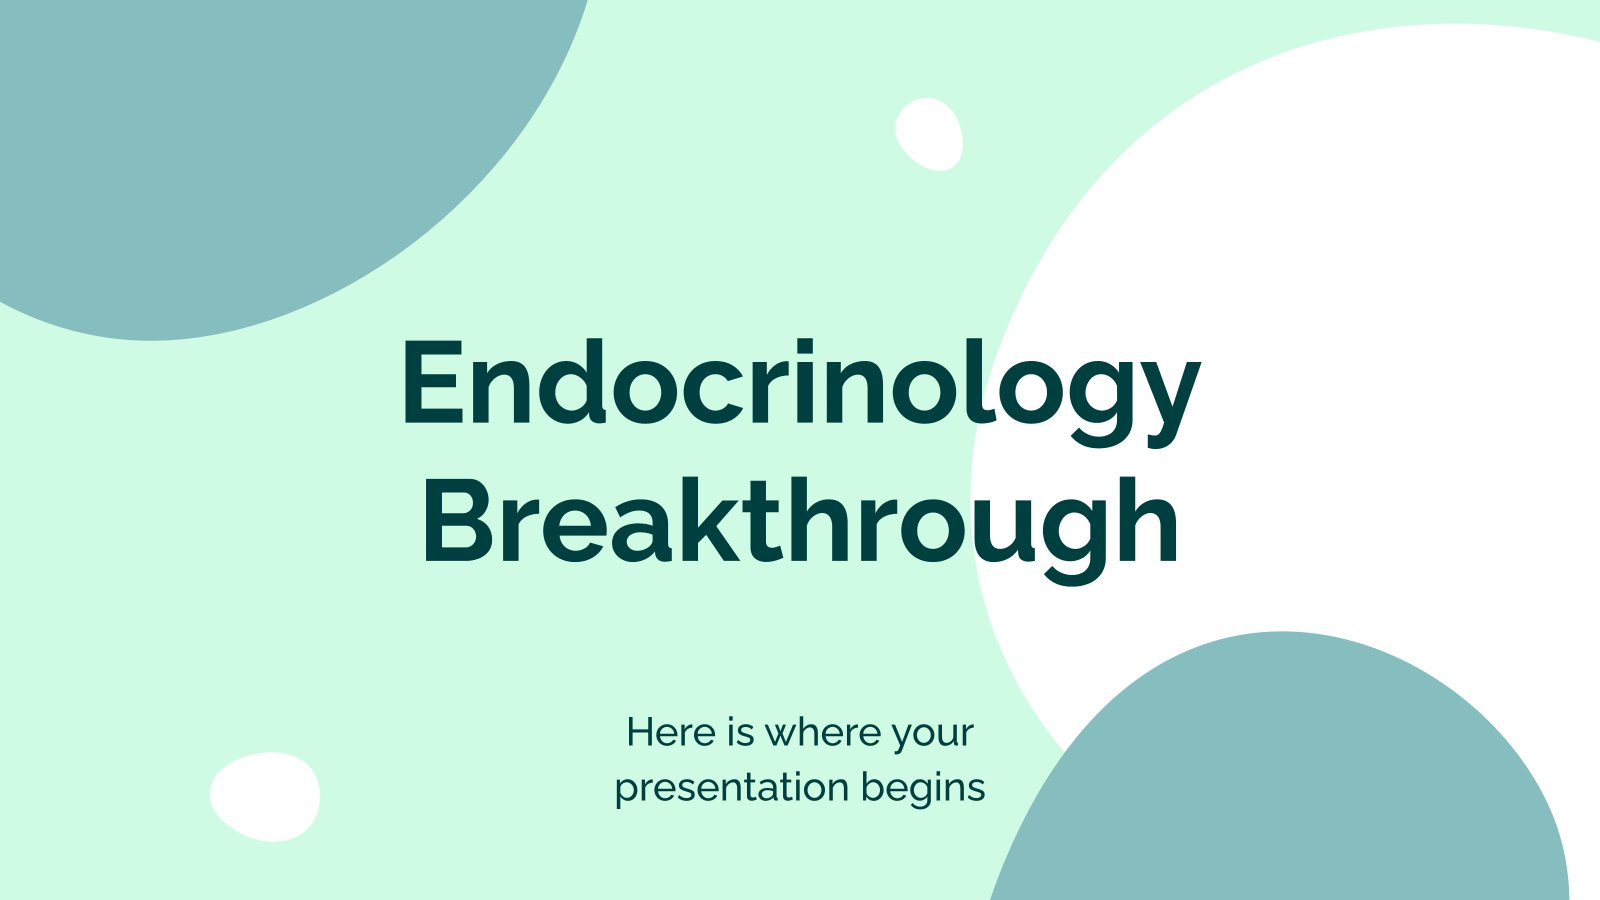 Endocrinology Breakthrough presentation template